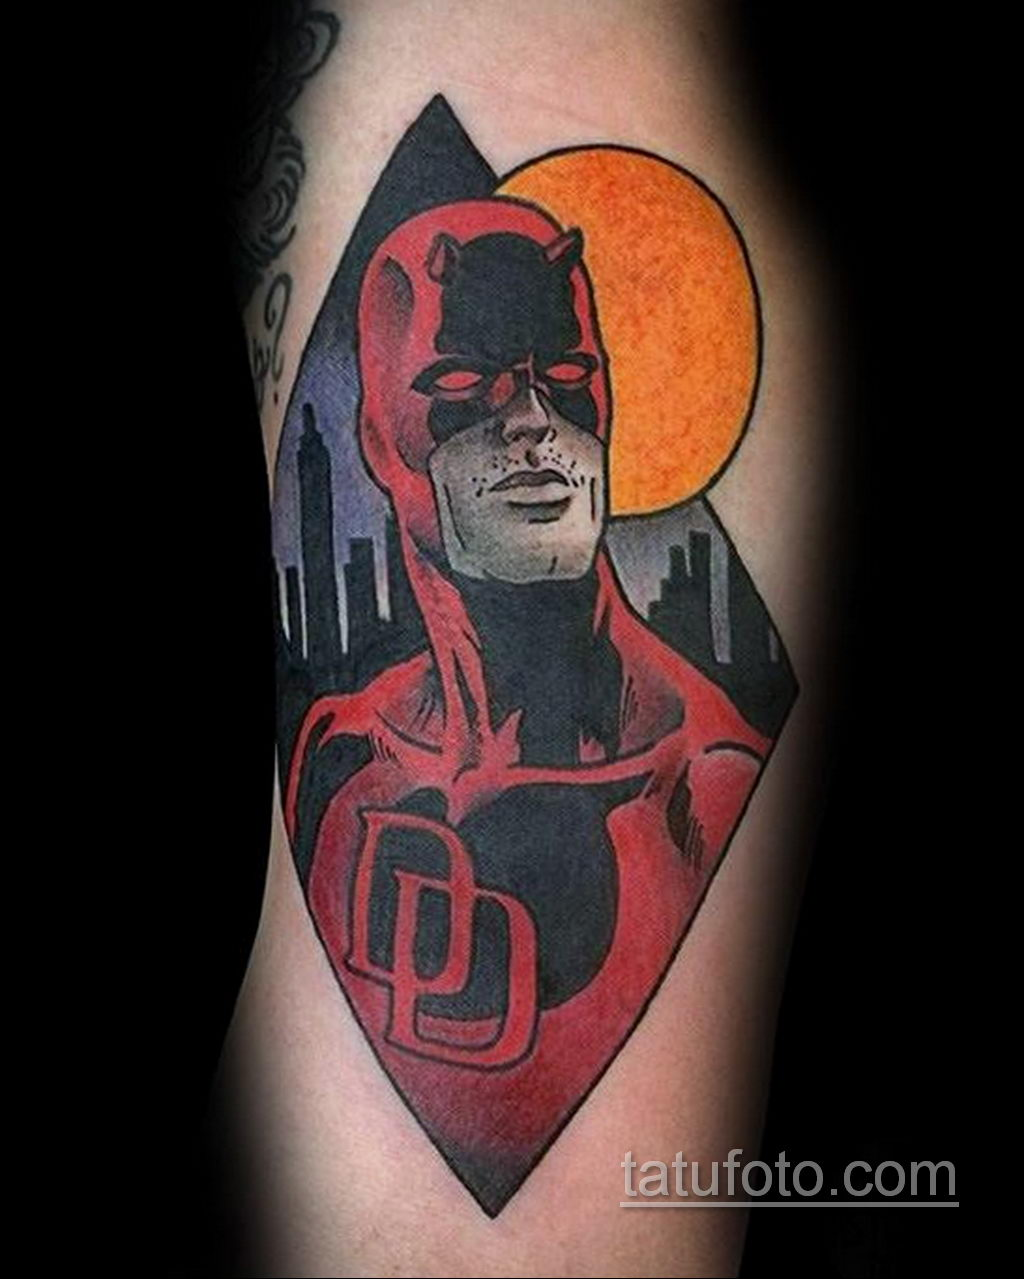 Тату супергерой Сорвиголова 15.01.2020 №007 -Daredevil Superhero Tattoo- tatufoto.com